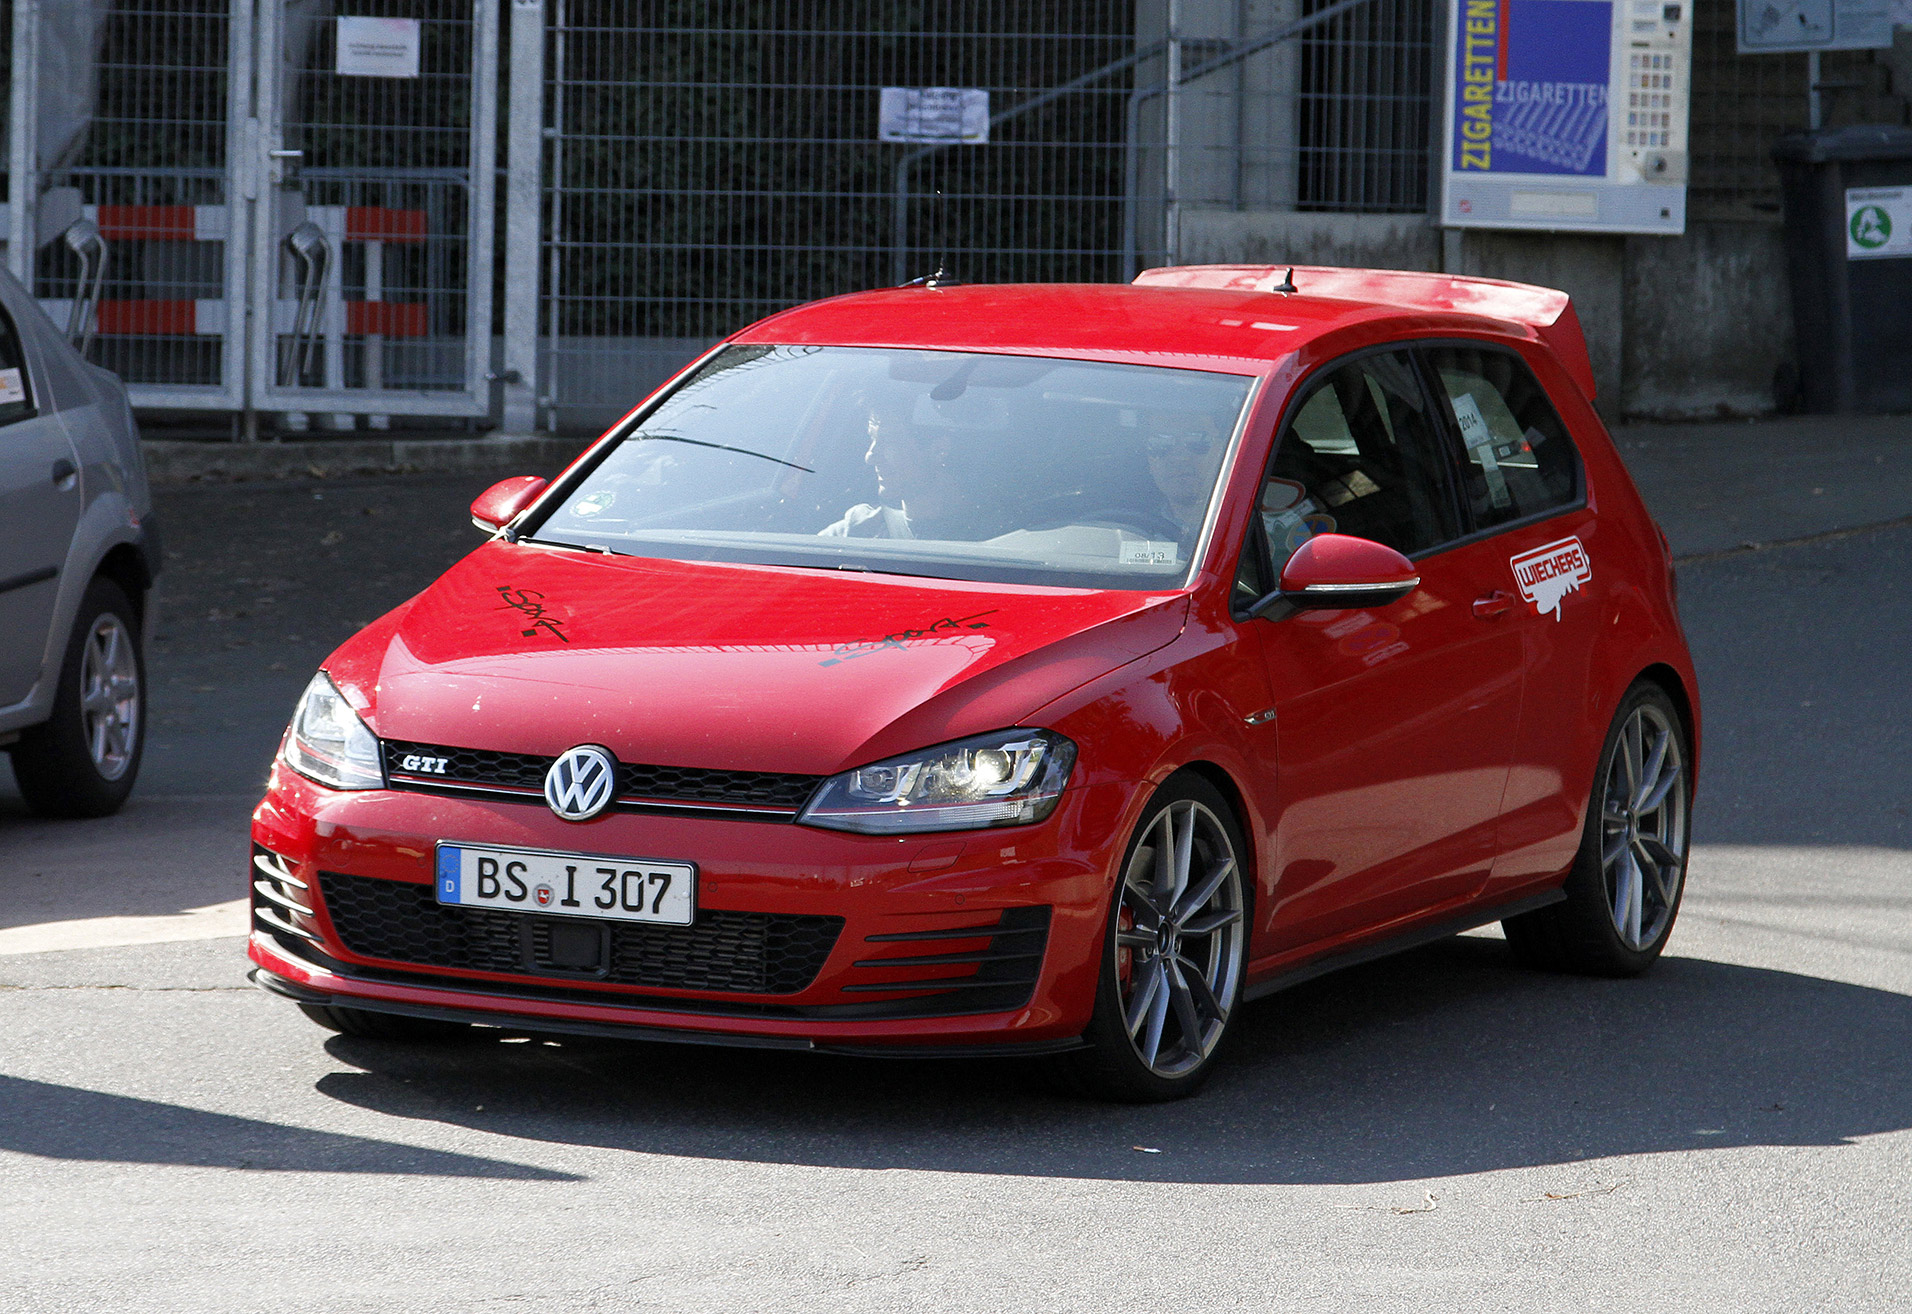 VW Golf GTI CLUB SPORT 1 600x300